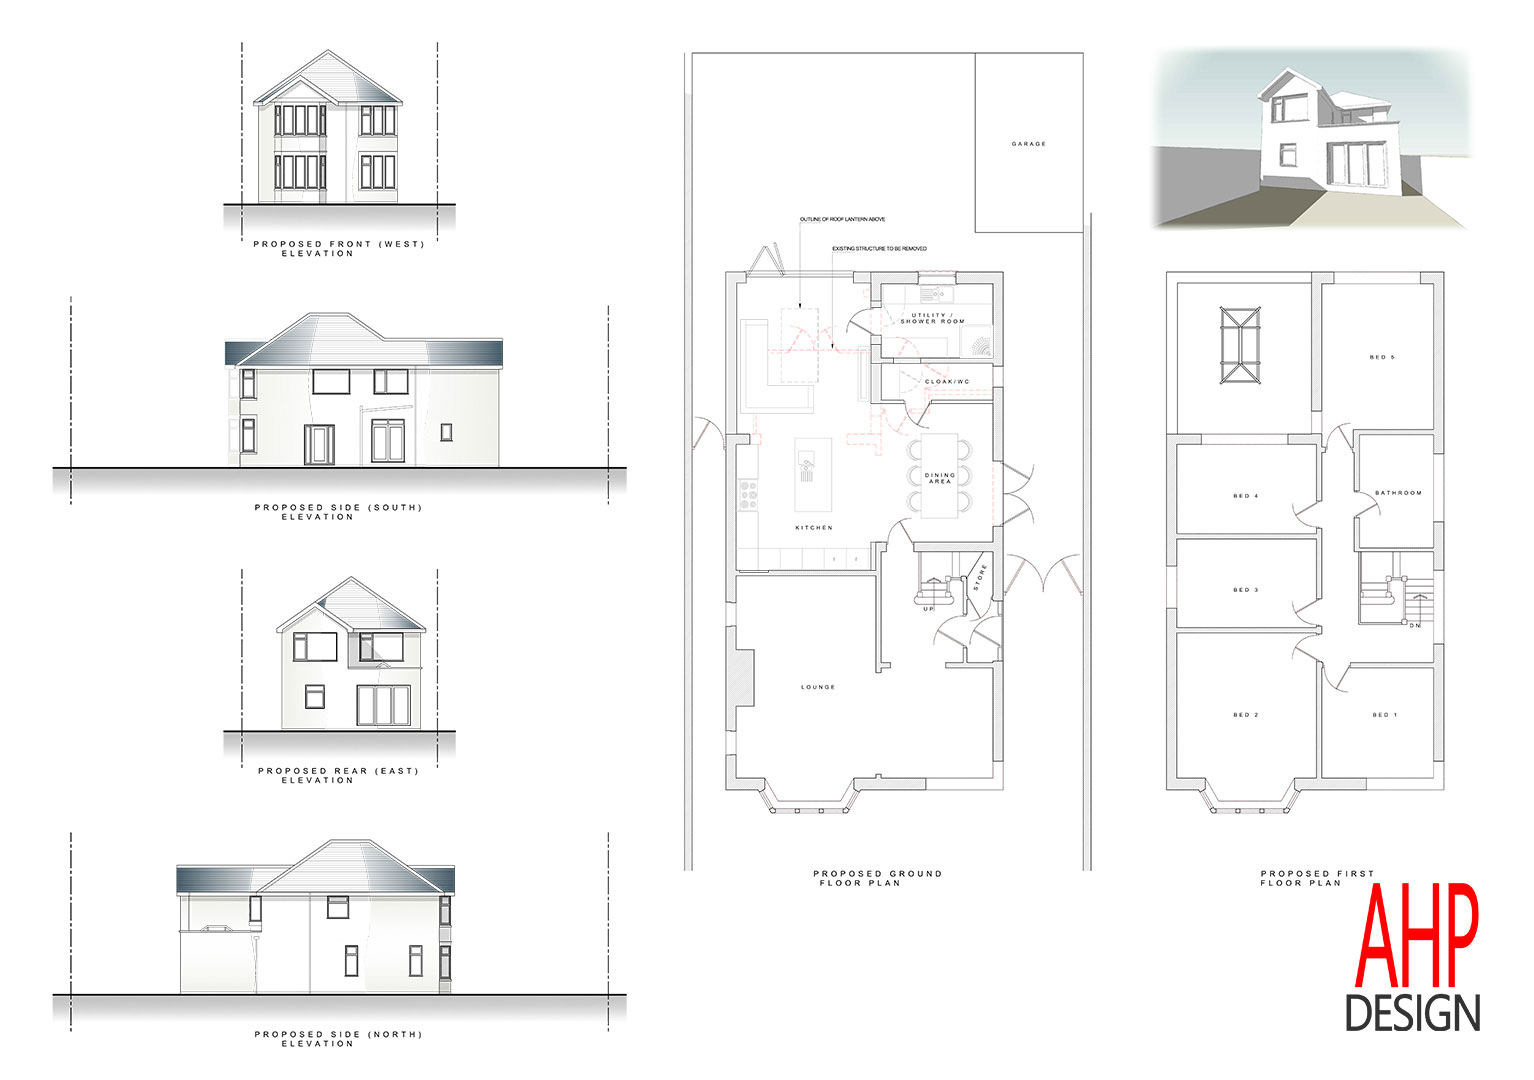 Detached house blackpool proposed plans